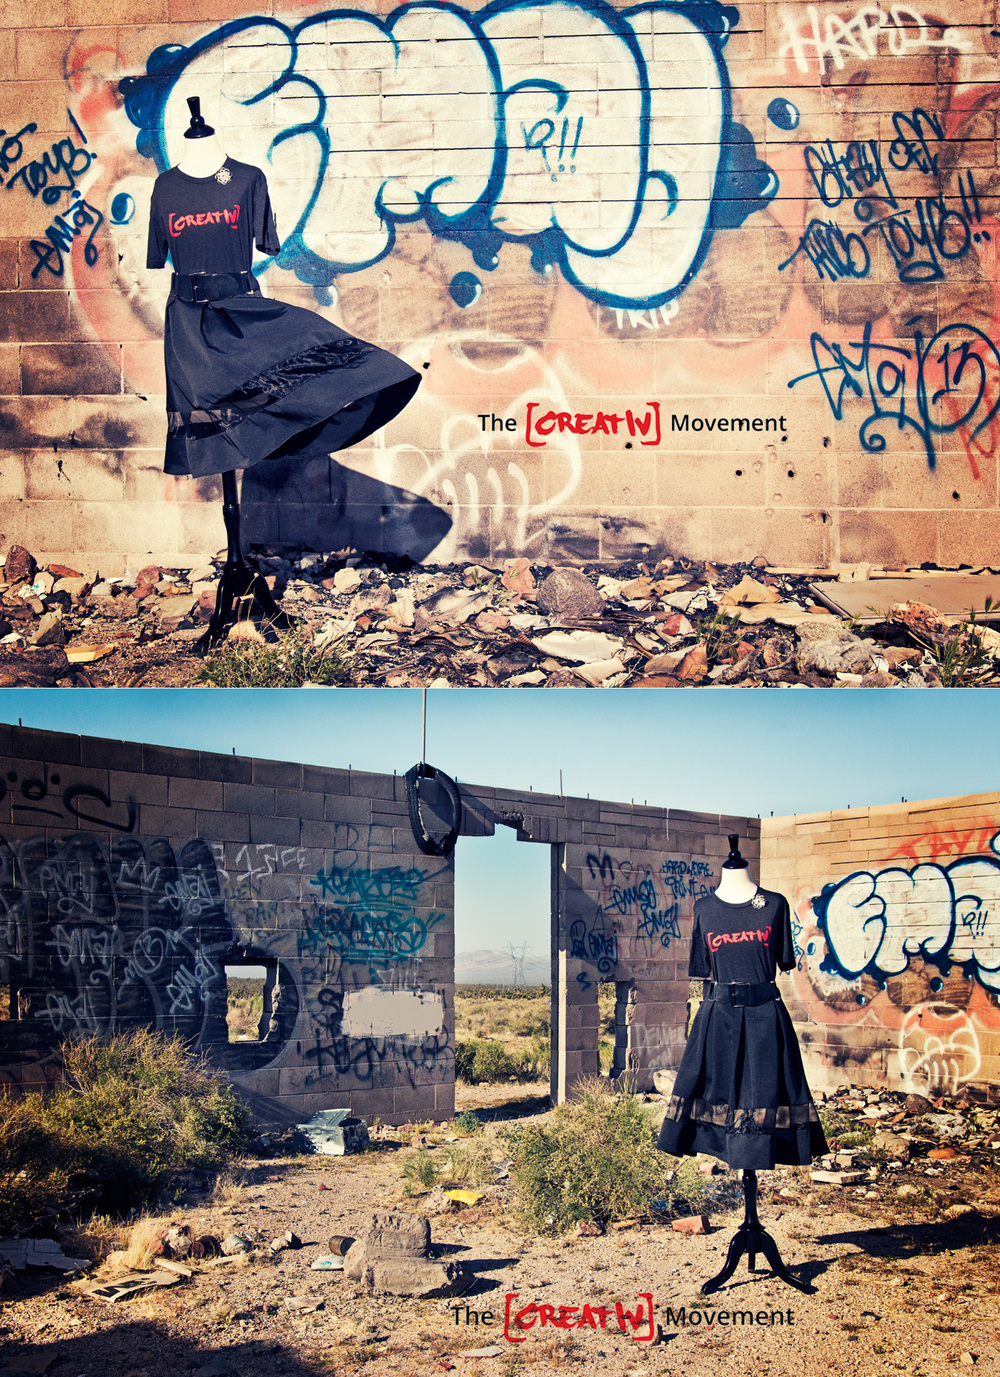 """I AM [CREATIV]""  These images were photographed in an abandoned building in the Mohave National Preserve in California  This mini Set was designed in dedication of The [CREATIV] Movement! They have helped me to realize that being an individual is an amazing thing! That I should love and be proud to share my voice, my vision, my creativity! To find out more about this Grassroots movement that was built by [CREATIVS] for [CREATIVS] go to:  http://www.creativ.com"